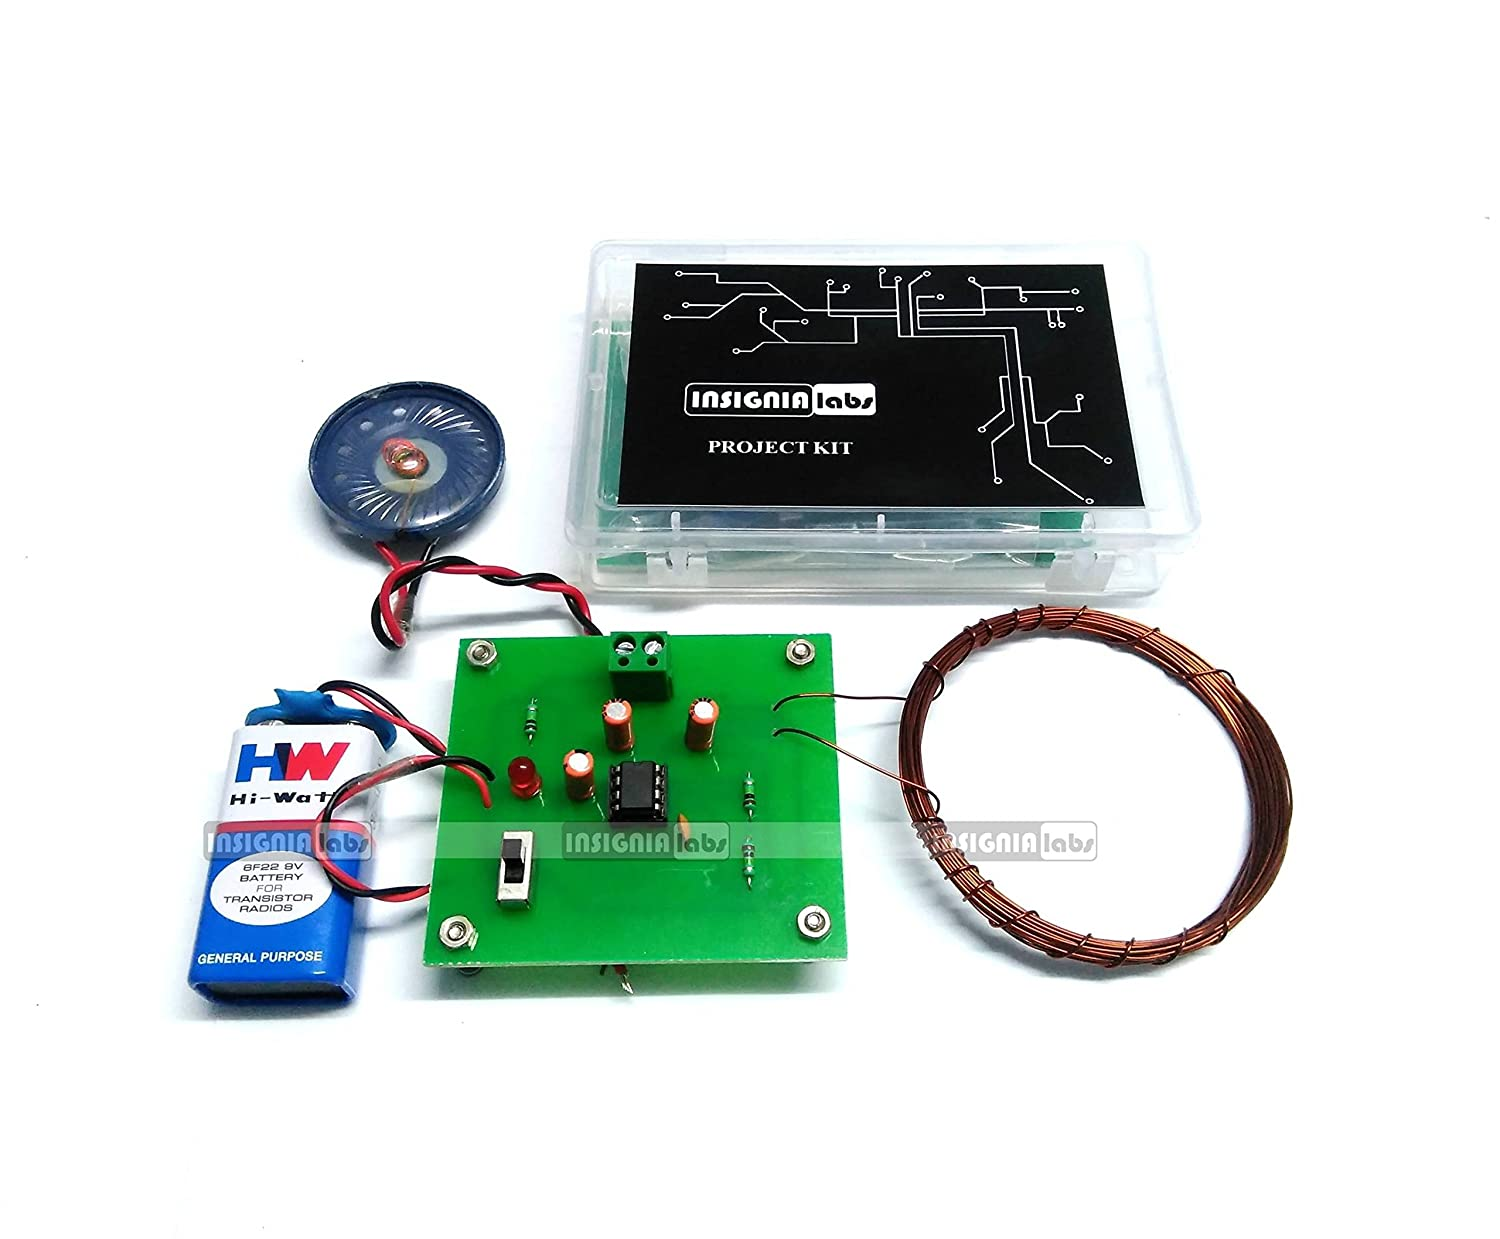 Buy Insignia Labs Metal Detector Kit Project Online At Low Prices Lm555 Electronics Circuit Detectors Part 3 In India